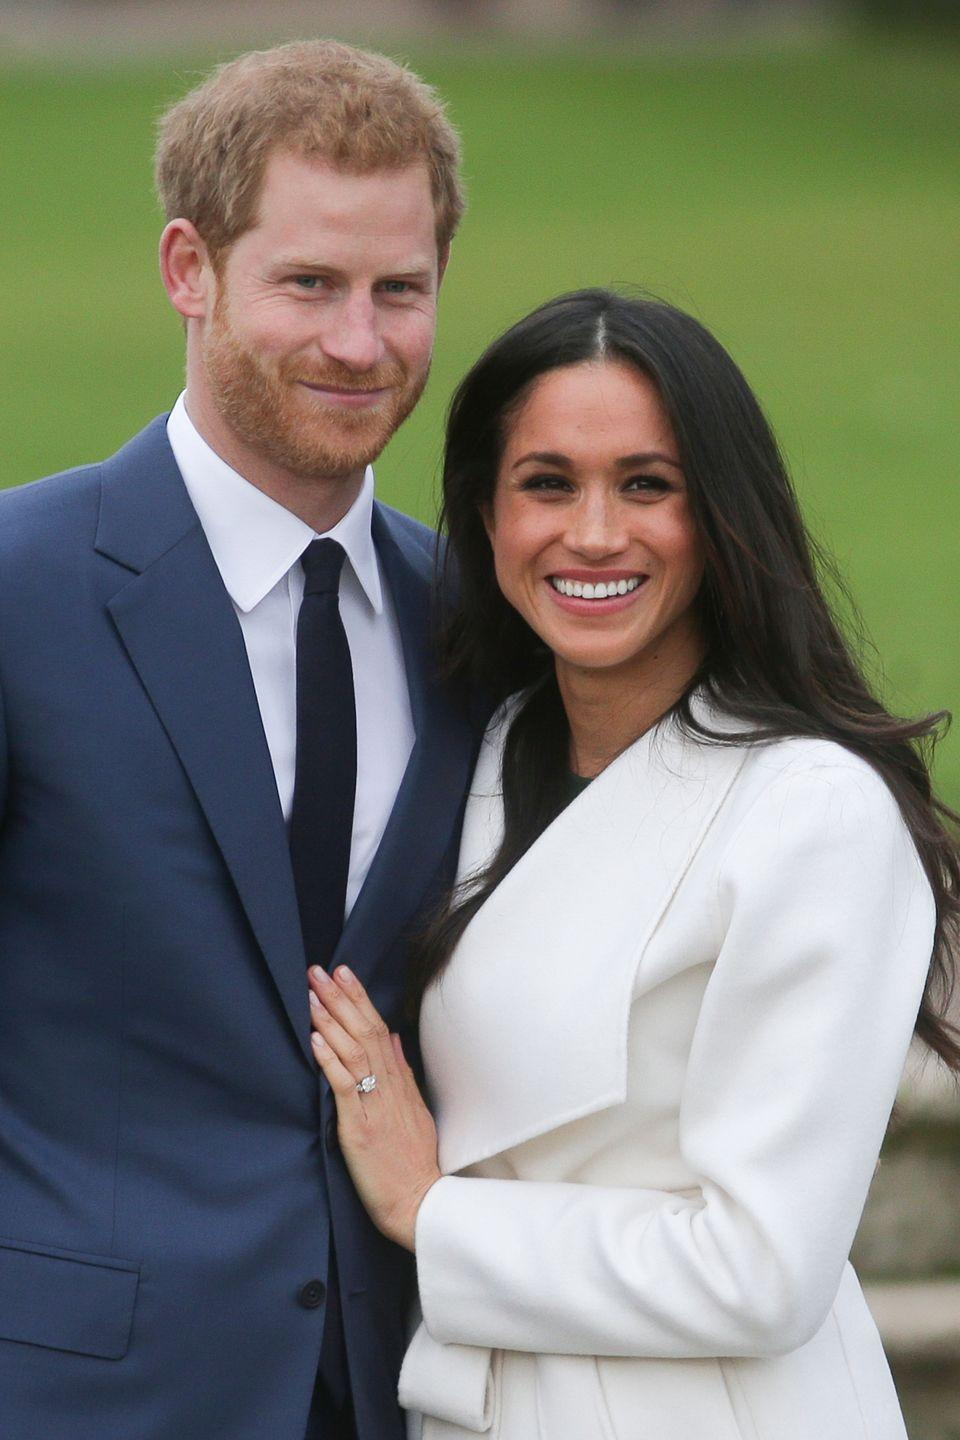 "<p>In November 2017, Prince Harry and Meghan Markle arrived hand in hand at Princess Diana's Memorial Garden in Kensington Palace to <a href=""https://www.townandcountrymag.com/society/tradition/g13936639/prince-harry-meghan-markle-engagement-photos/"" rel=""nofollow noopener"" target=""_blank"" data-ylk=""slk:announce their engagement"" class=""link rapid-noclick-resp"">announce their engagement</a>. The couple, who <a href=""https://www.townandcountrymag.com/society/a9664508/prince-harry-meghan-markle-relationship/"" rel=""nofollow noopener"" target=""_blank"" data-ylk=""slk:met through mutual friends"" class=""link rapid-noclick-resp"">met through mutual friends</a> in London in 2016, were married in St George's Chapel at Windsor Castle in May of 2018. </p>"